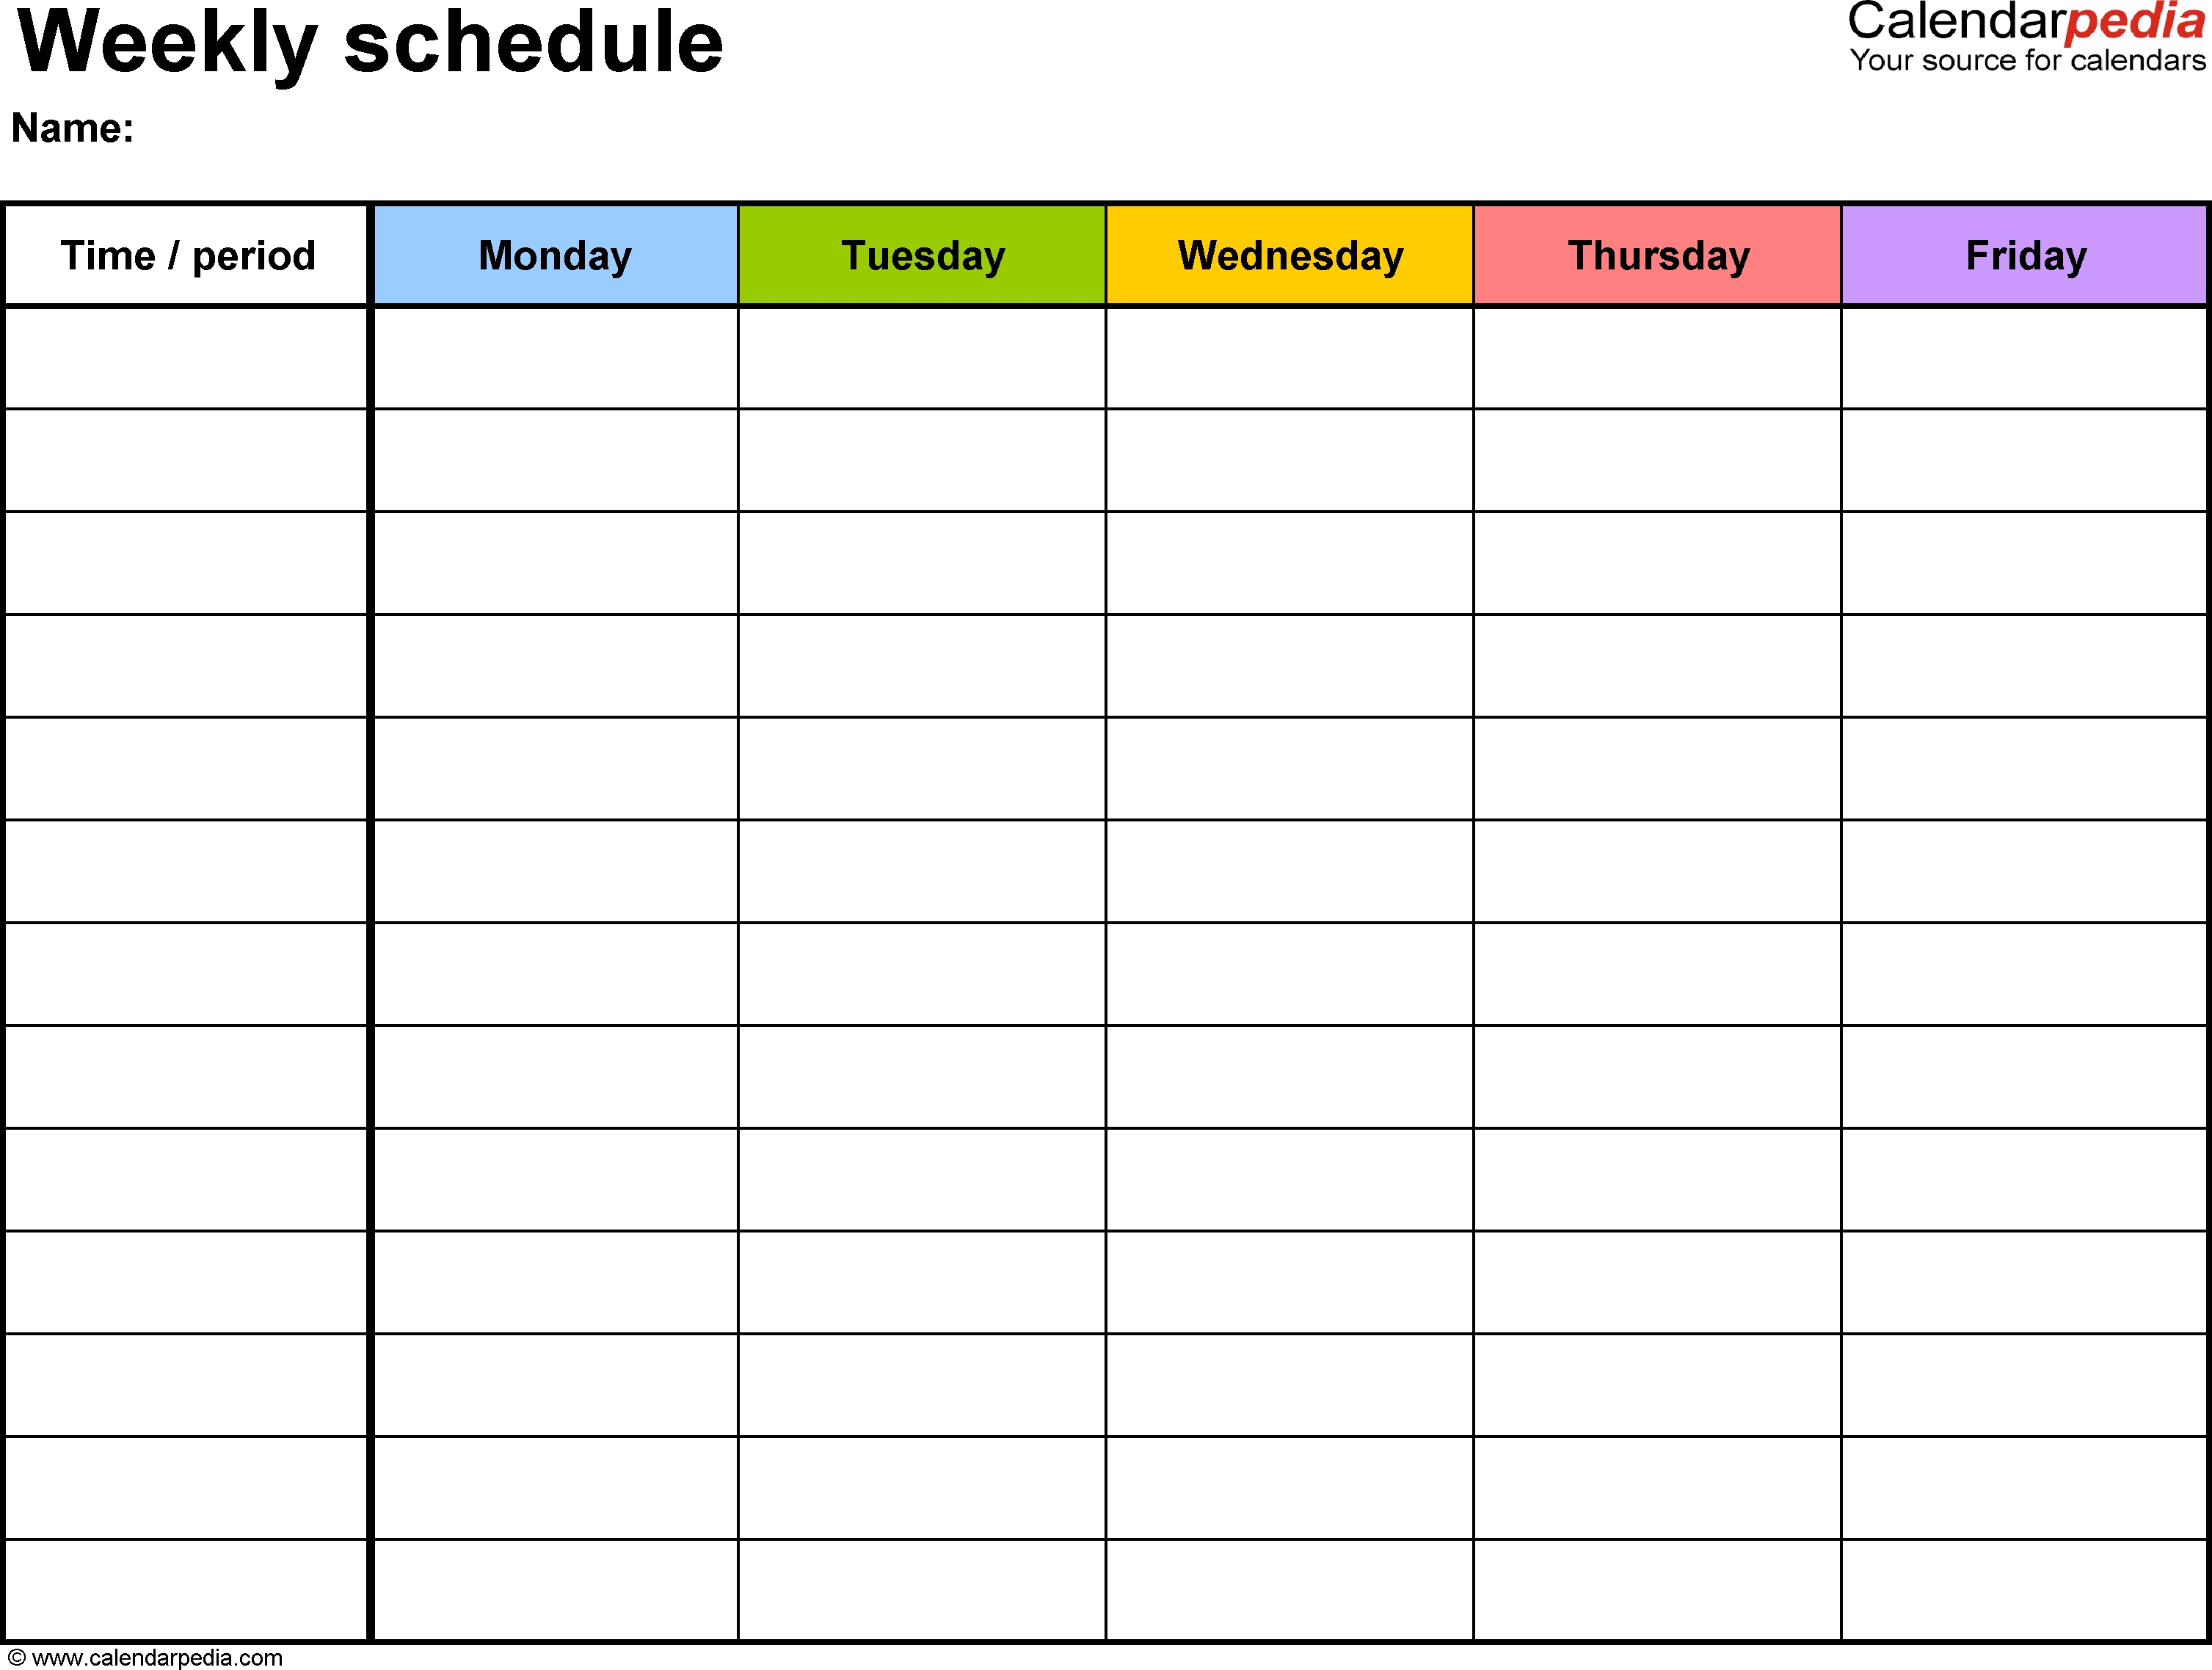 Free Weekly Schedule Templates For Word - 18 Templates throughout Blank Weekly Calendar Template Free